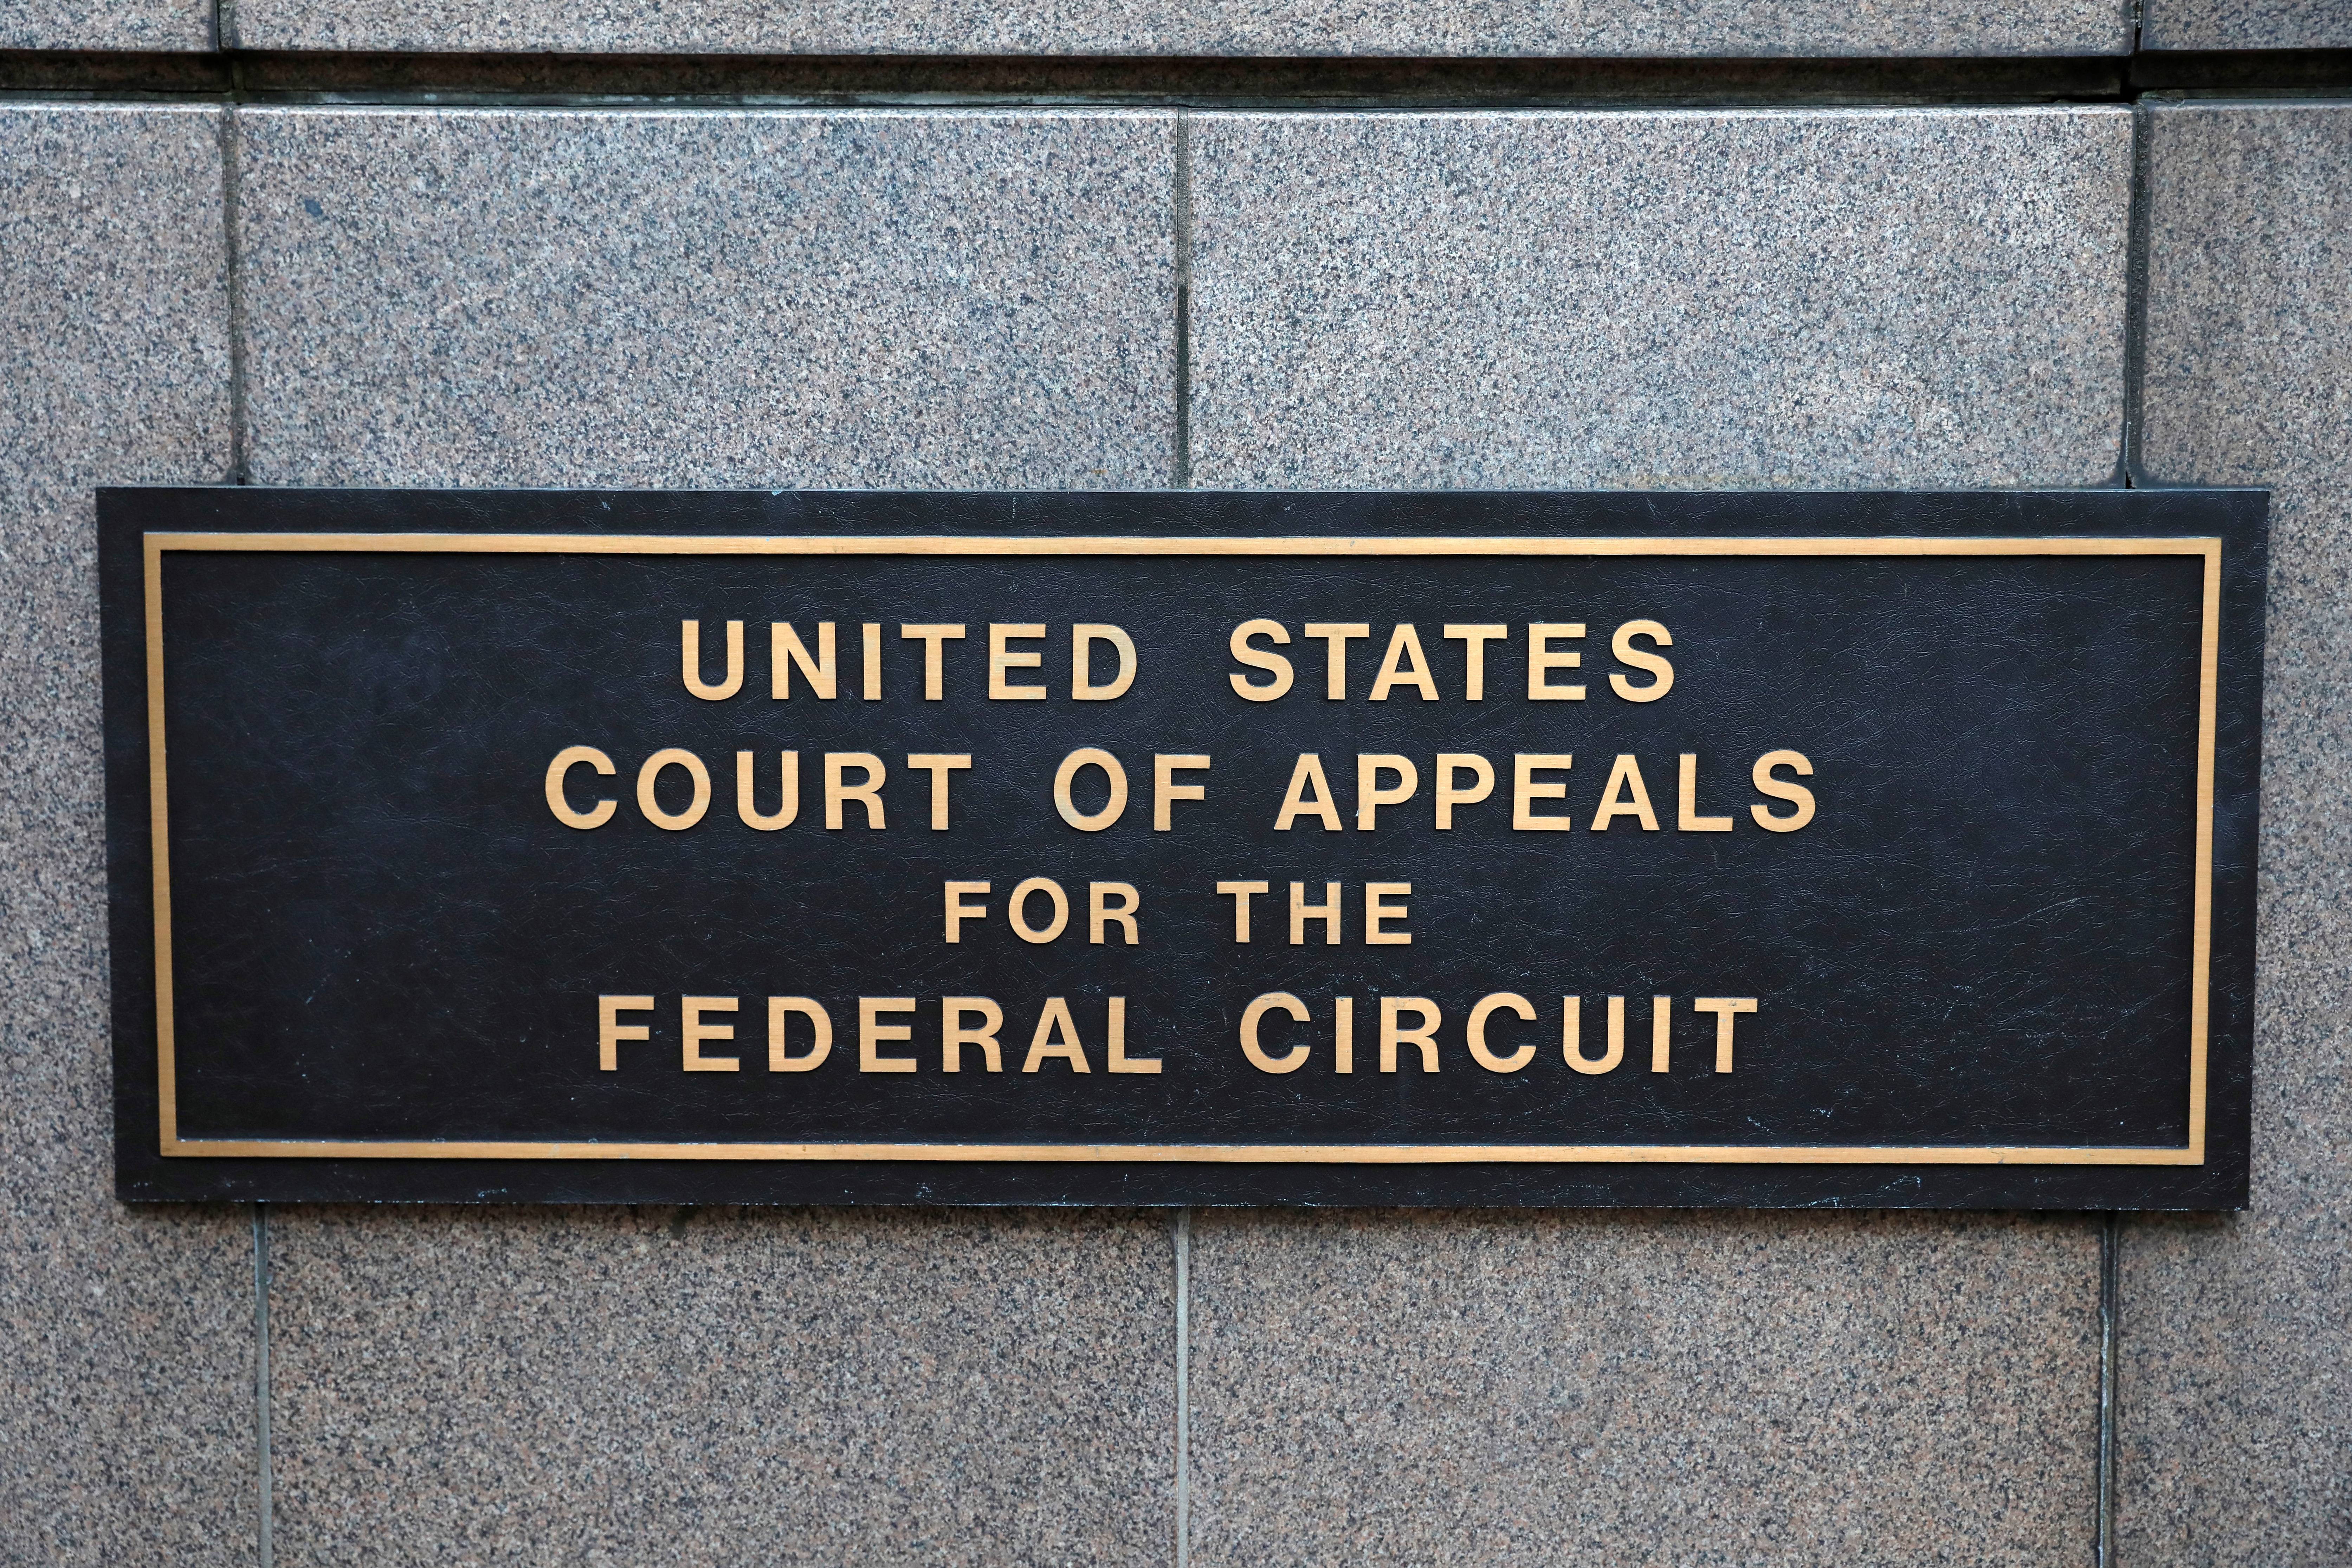 The United States Court of Appeals for the Federal Circuit is seen in Washington, D.C., U.S., August 30, 2020. REUTERS/Andrew Kelly